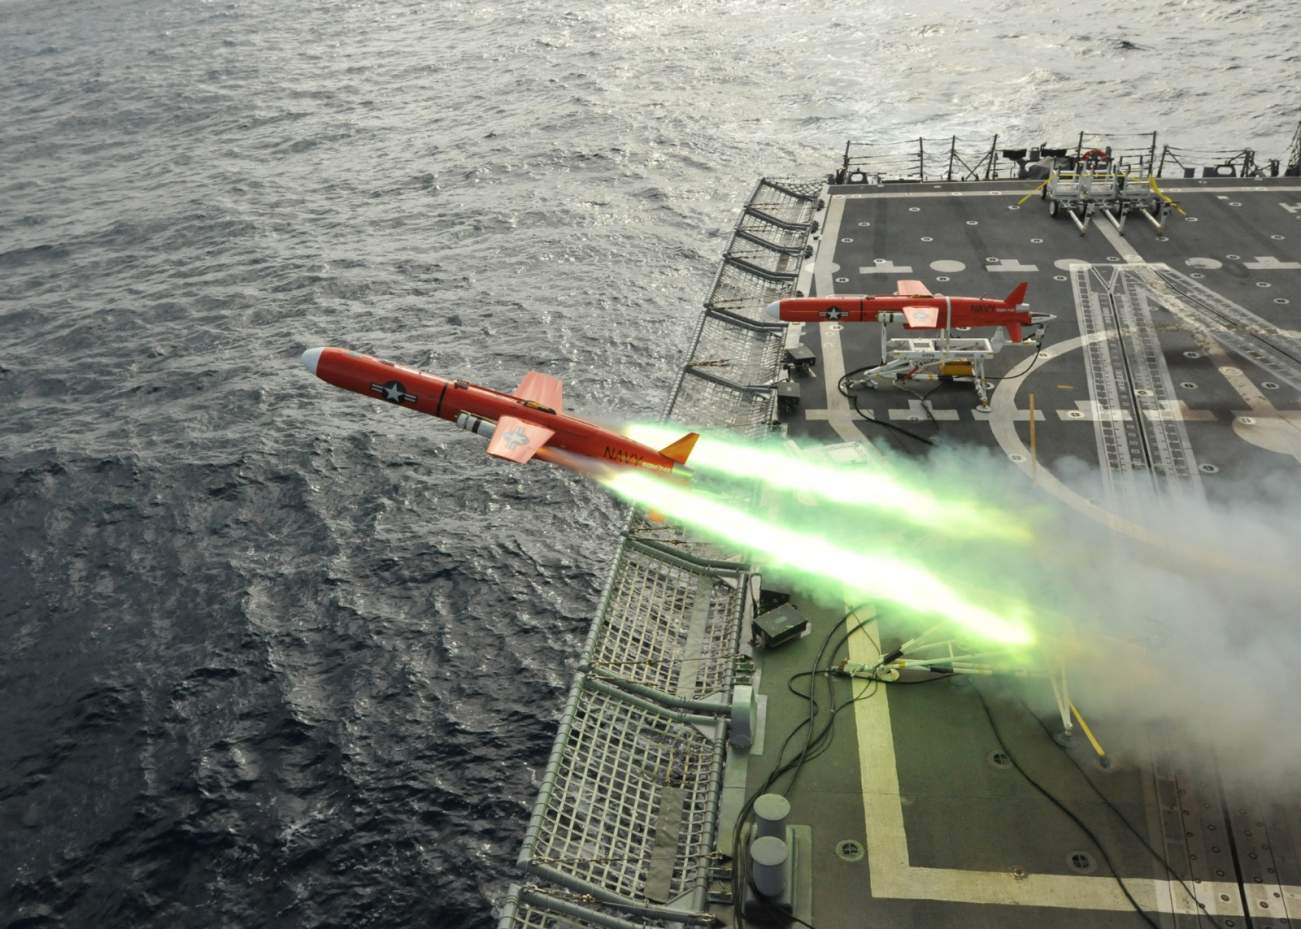 This Is How The Navy Will Use Drones To Destroy Chinese Submarines